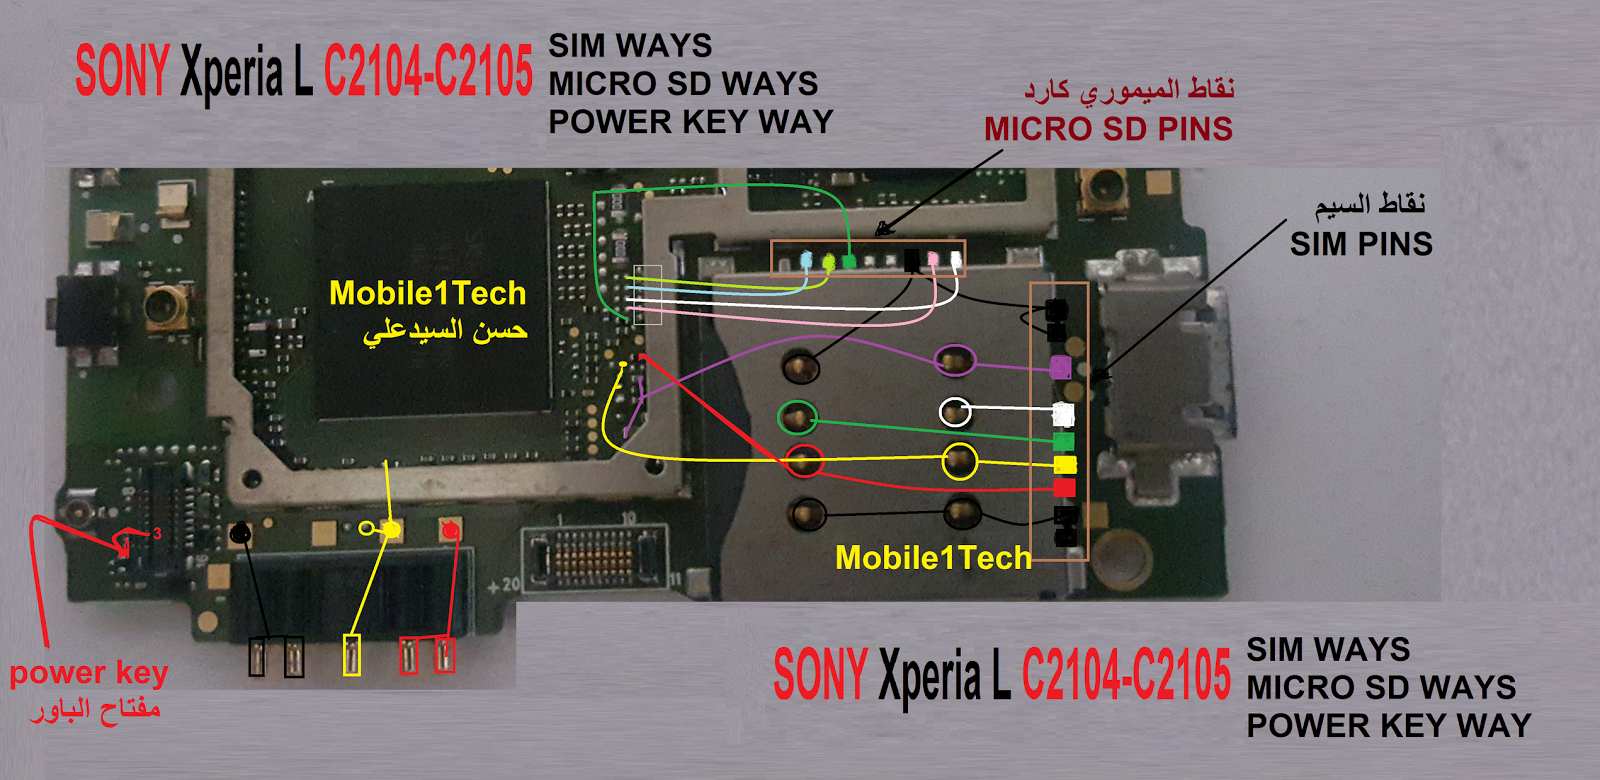 sony xperia l circuit diagram wiring diagram paper sony xperia l c2104 c2105 full schematic mobile1tech [ 1600 x 780 Pixel ]